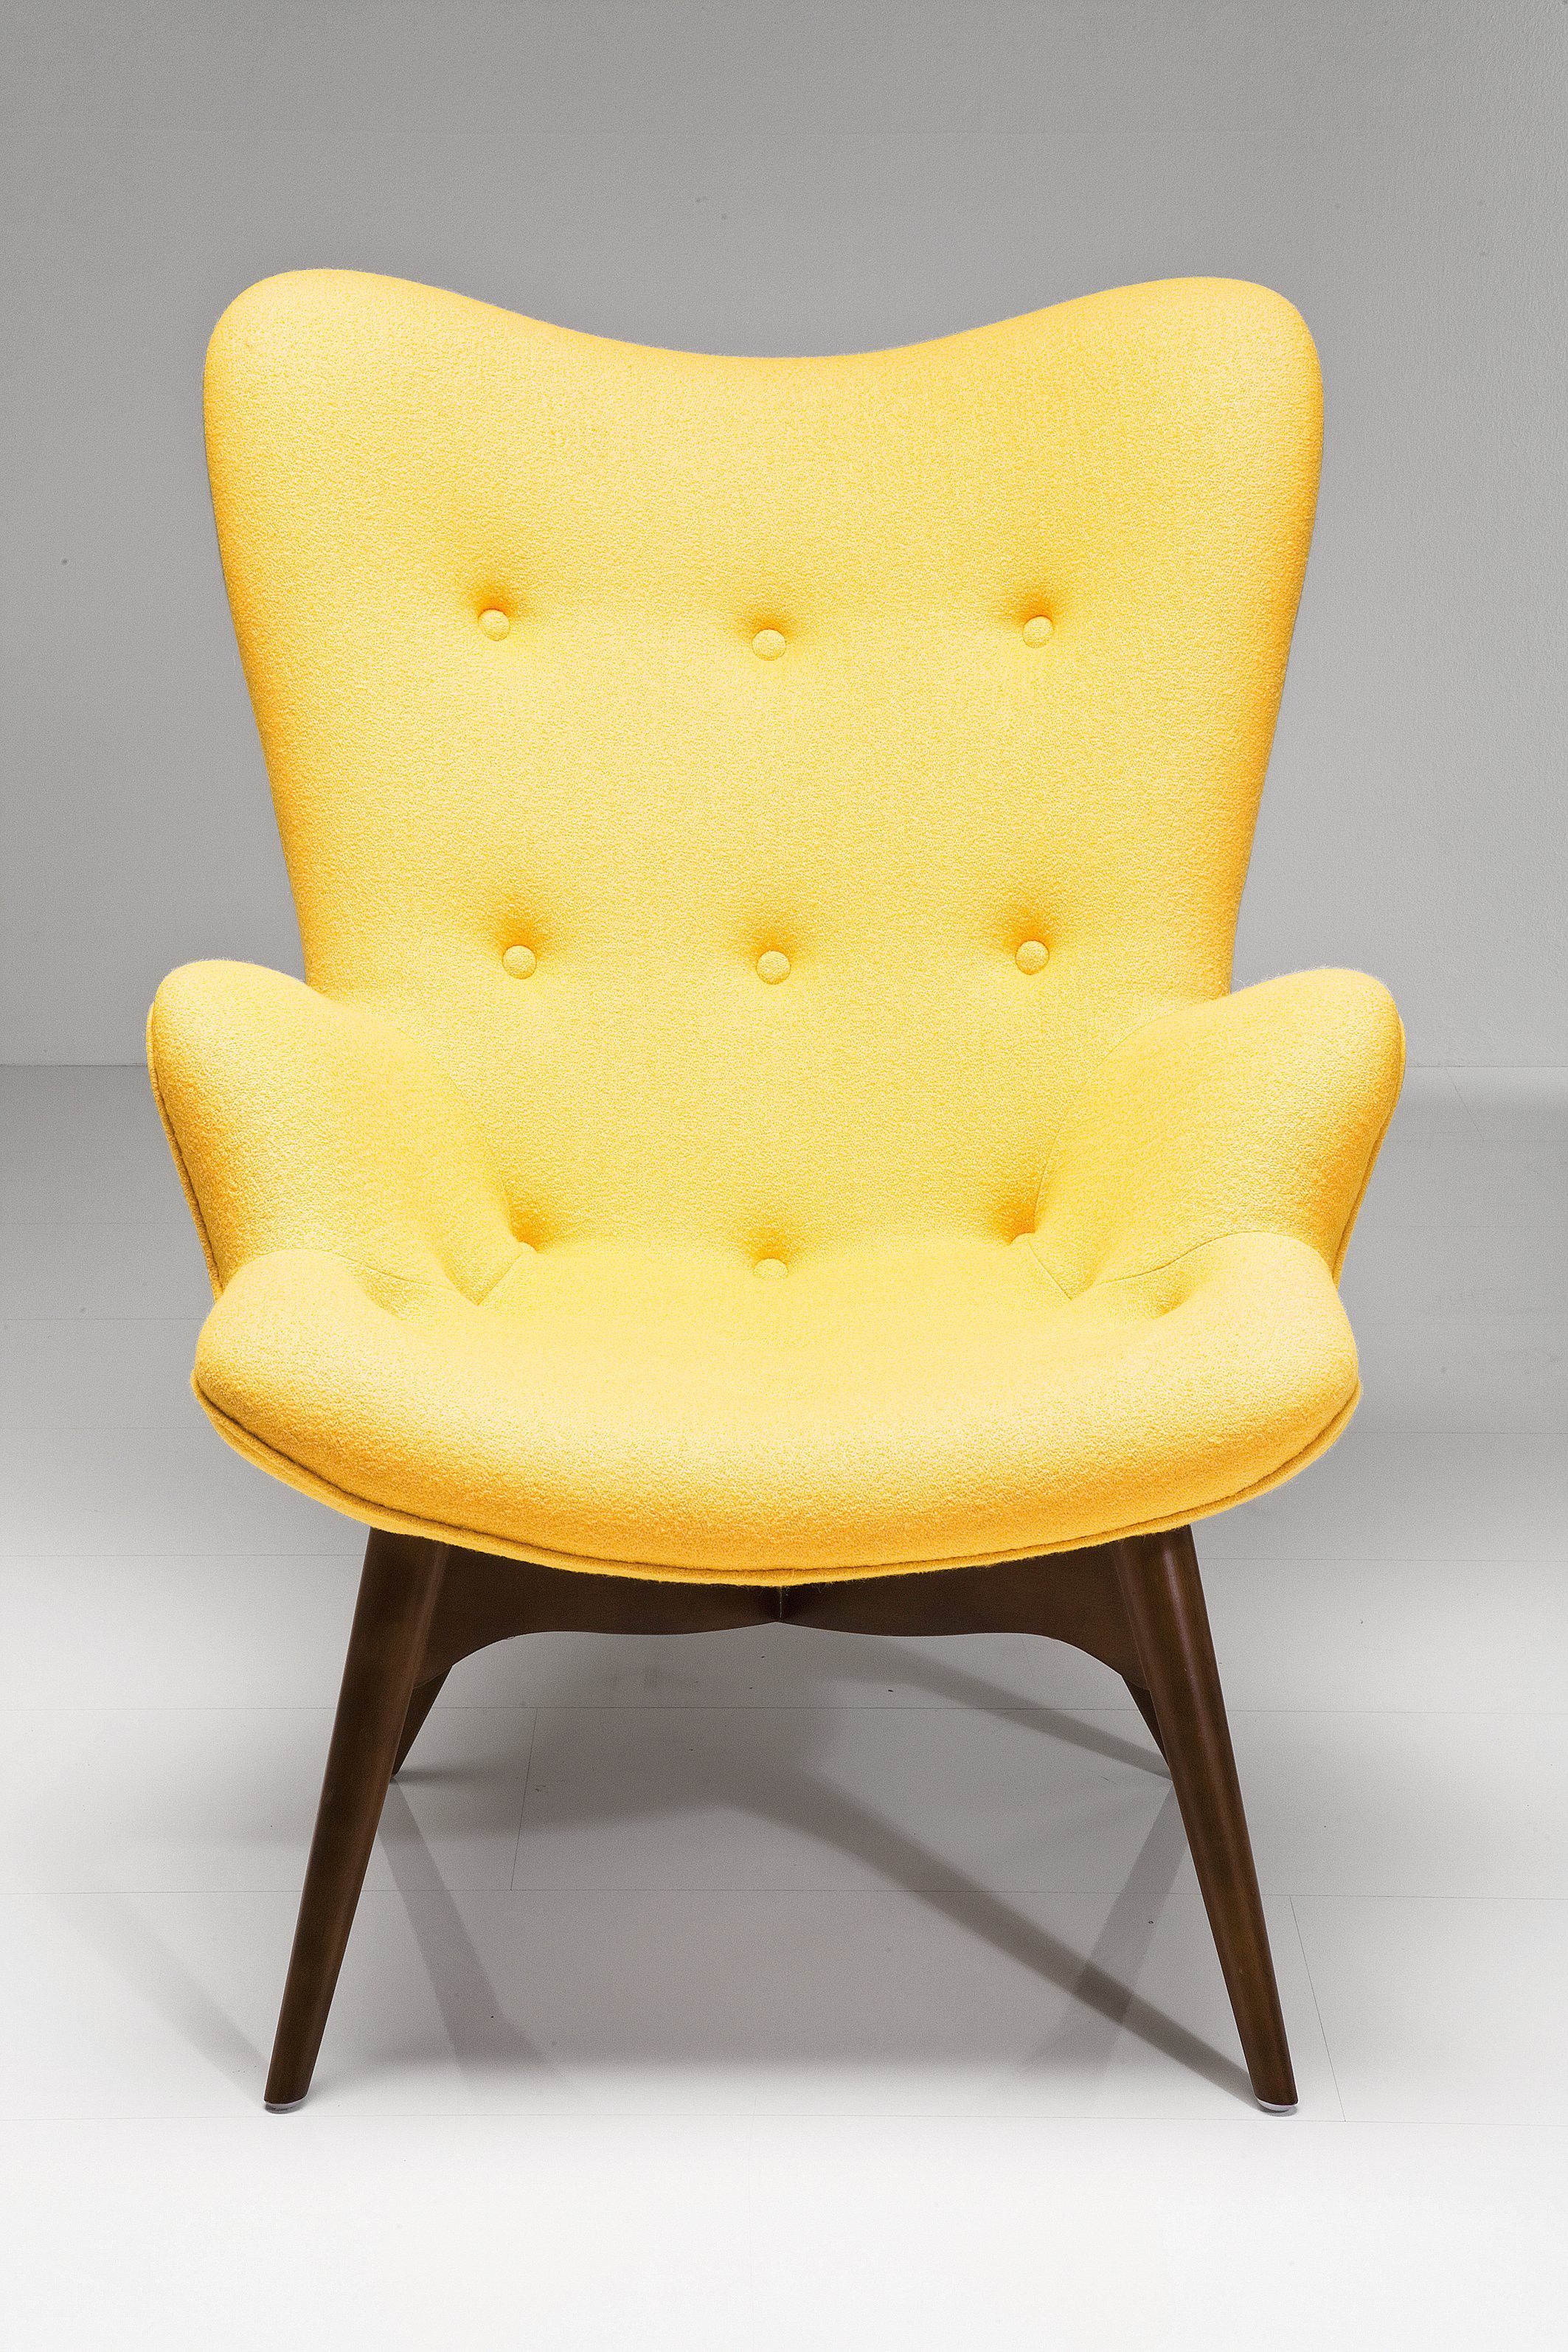 marvelous fauteuil jaune pas cher 2 fauteuil jaune moutarde moeulleux. Black Bedroom Furniture Sets. Home Design Ideas